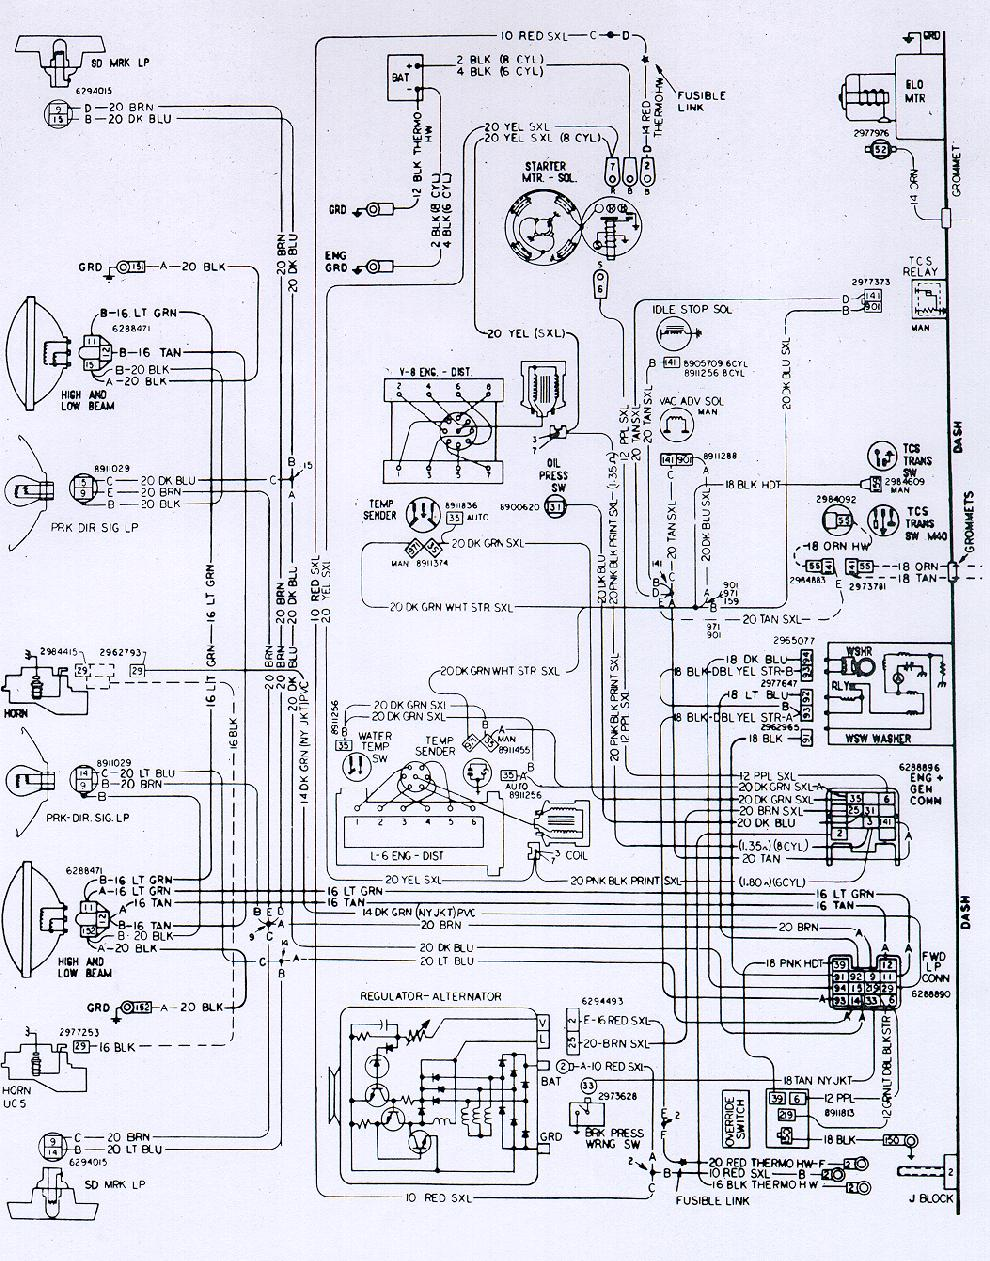 medium resolution of 1975 trans am wiring diagram wiring diagram blog 75 trans am wiring diagram